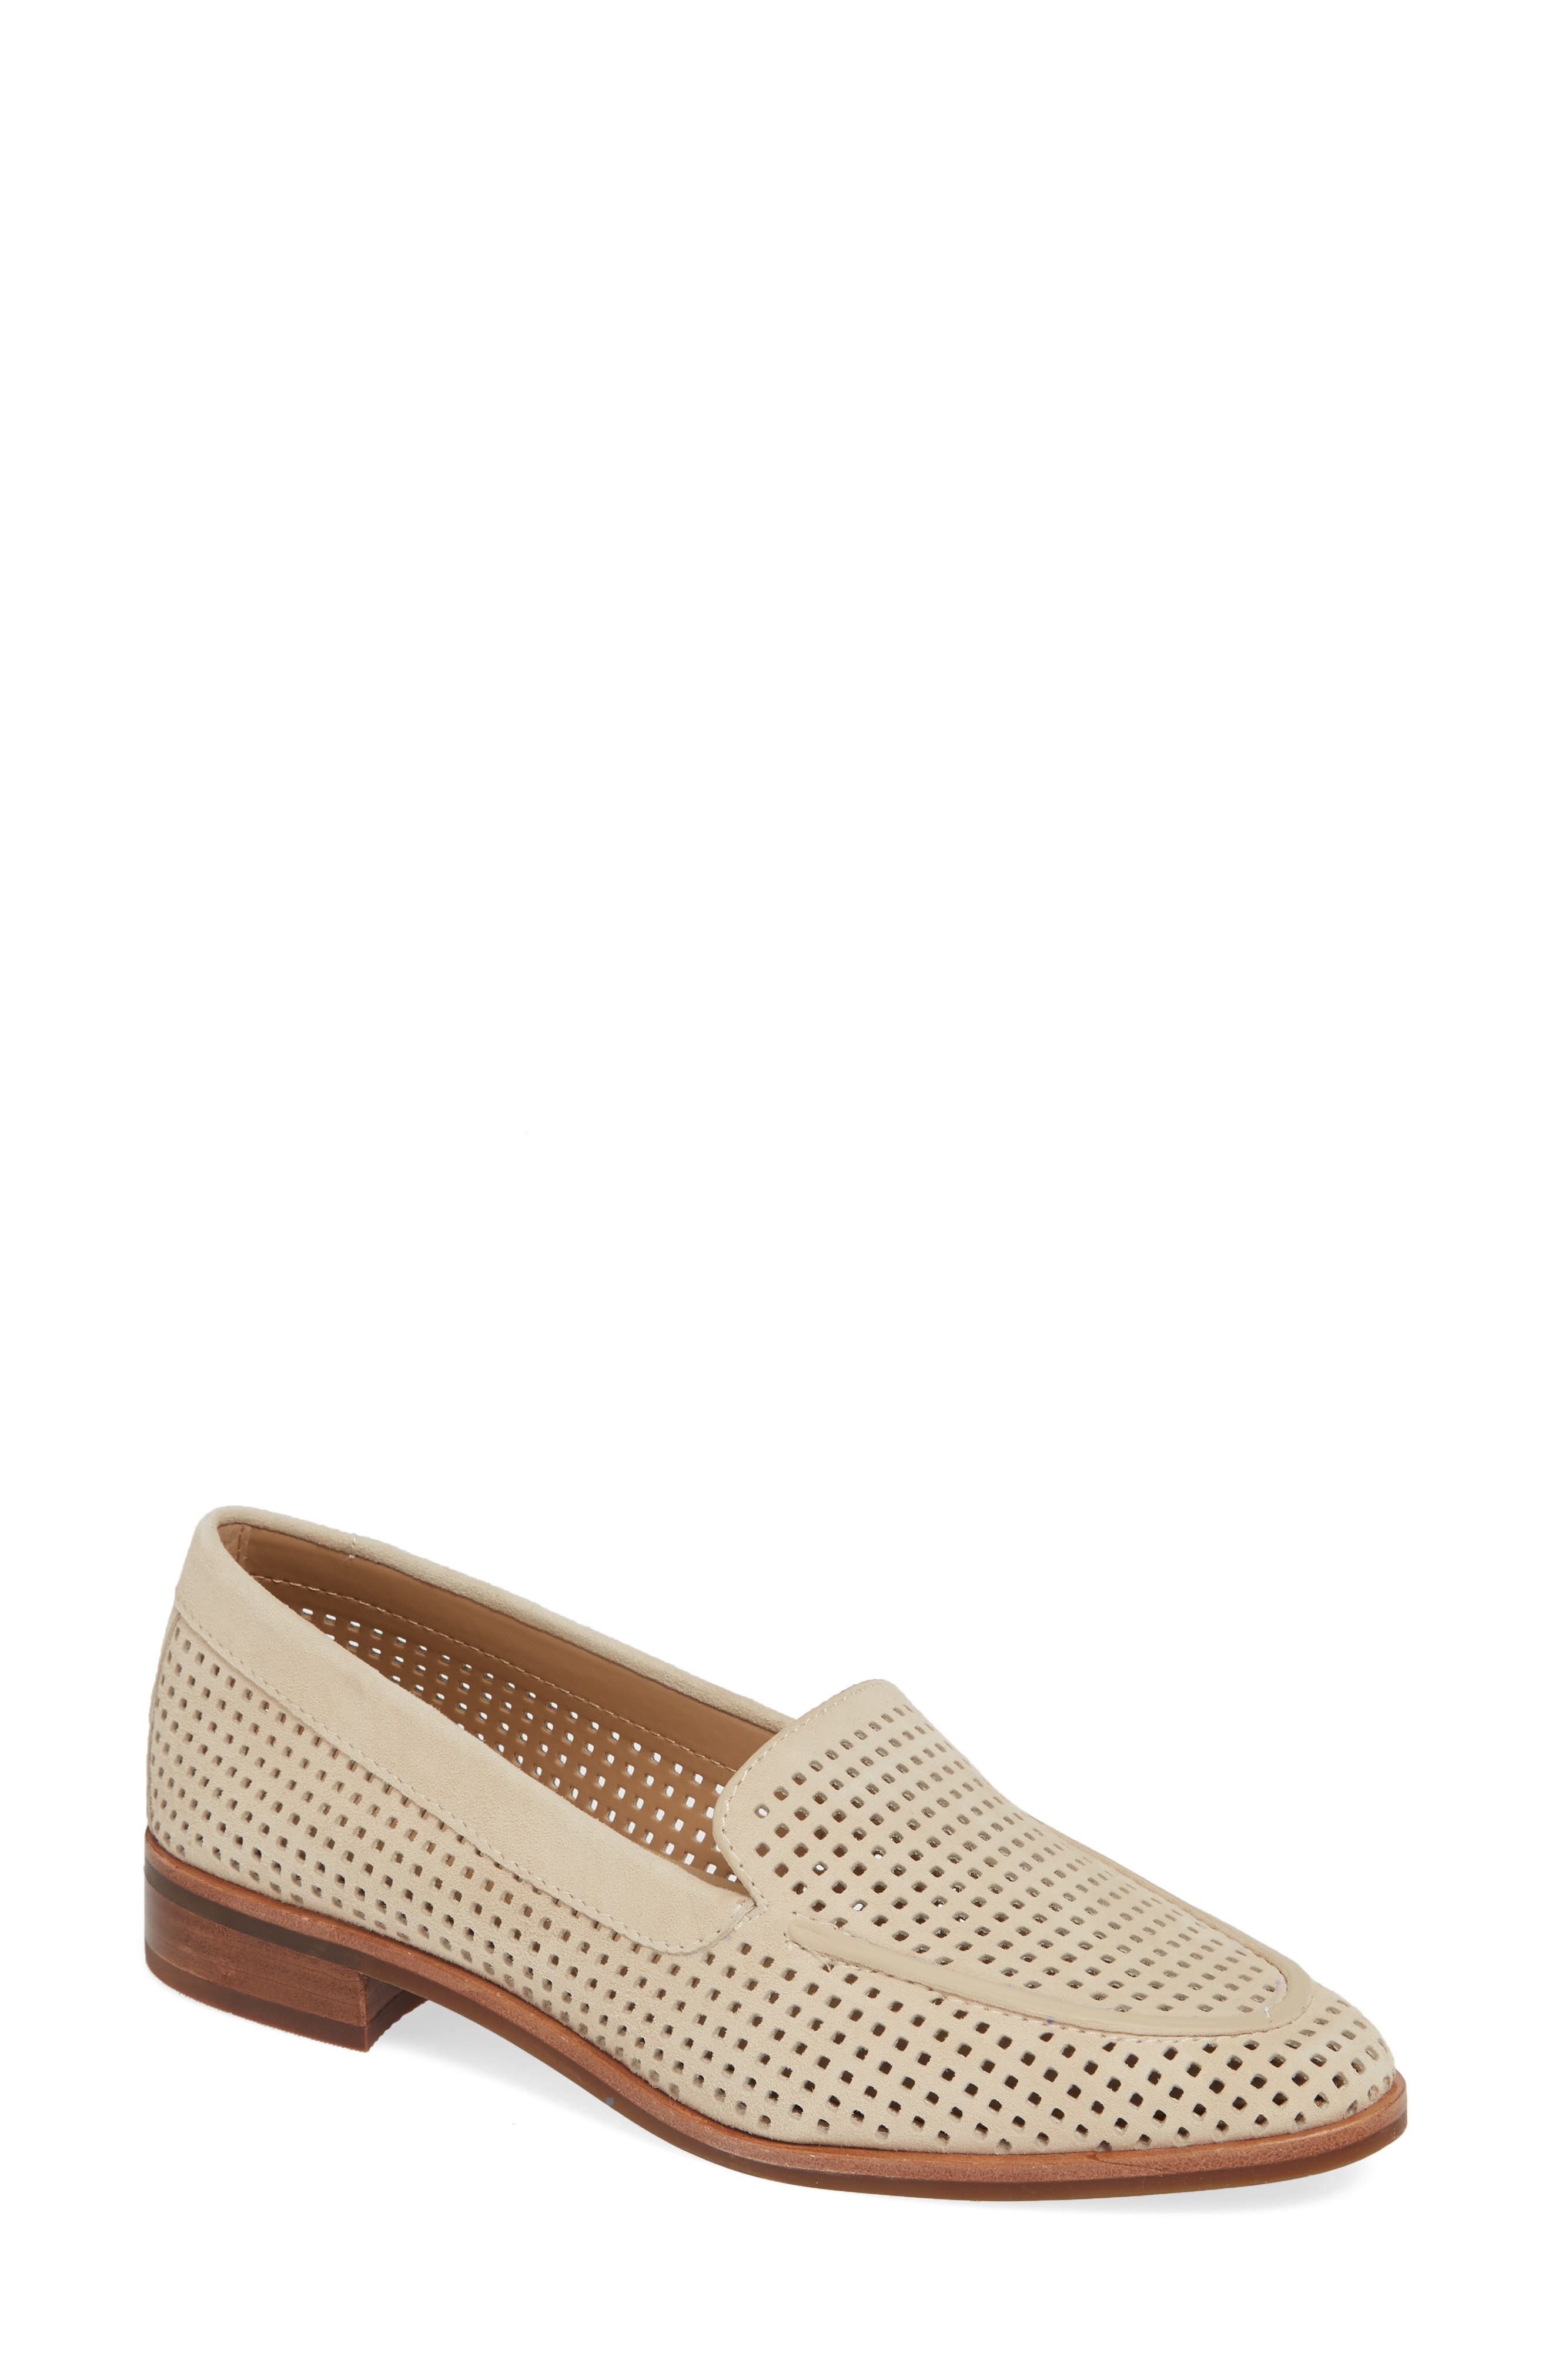 The Flexx Chelsea Peforated Loafer, Beige